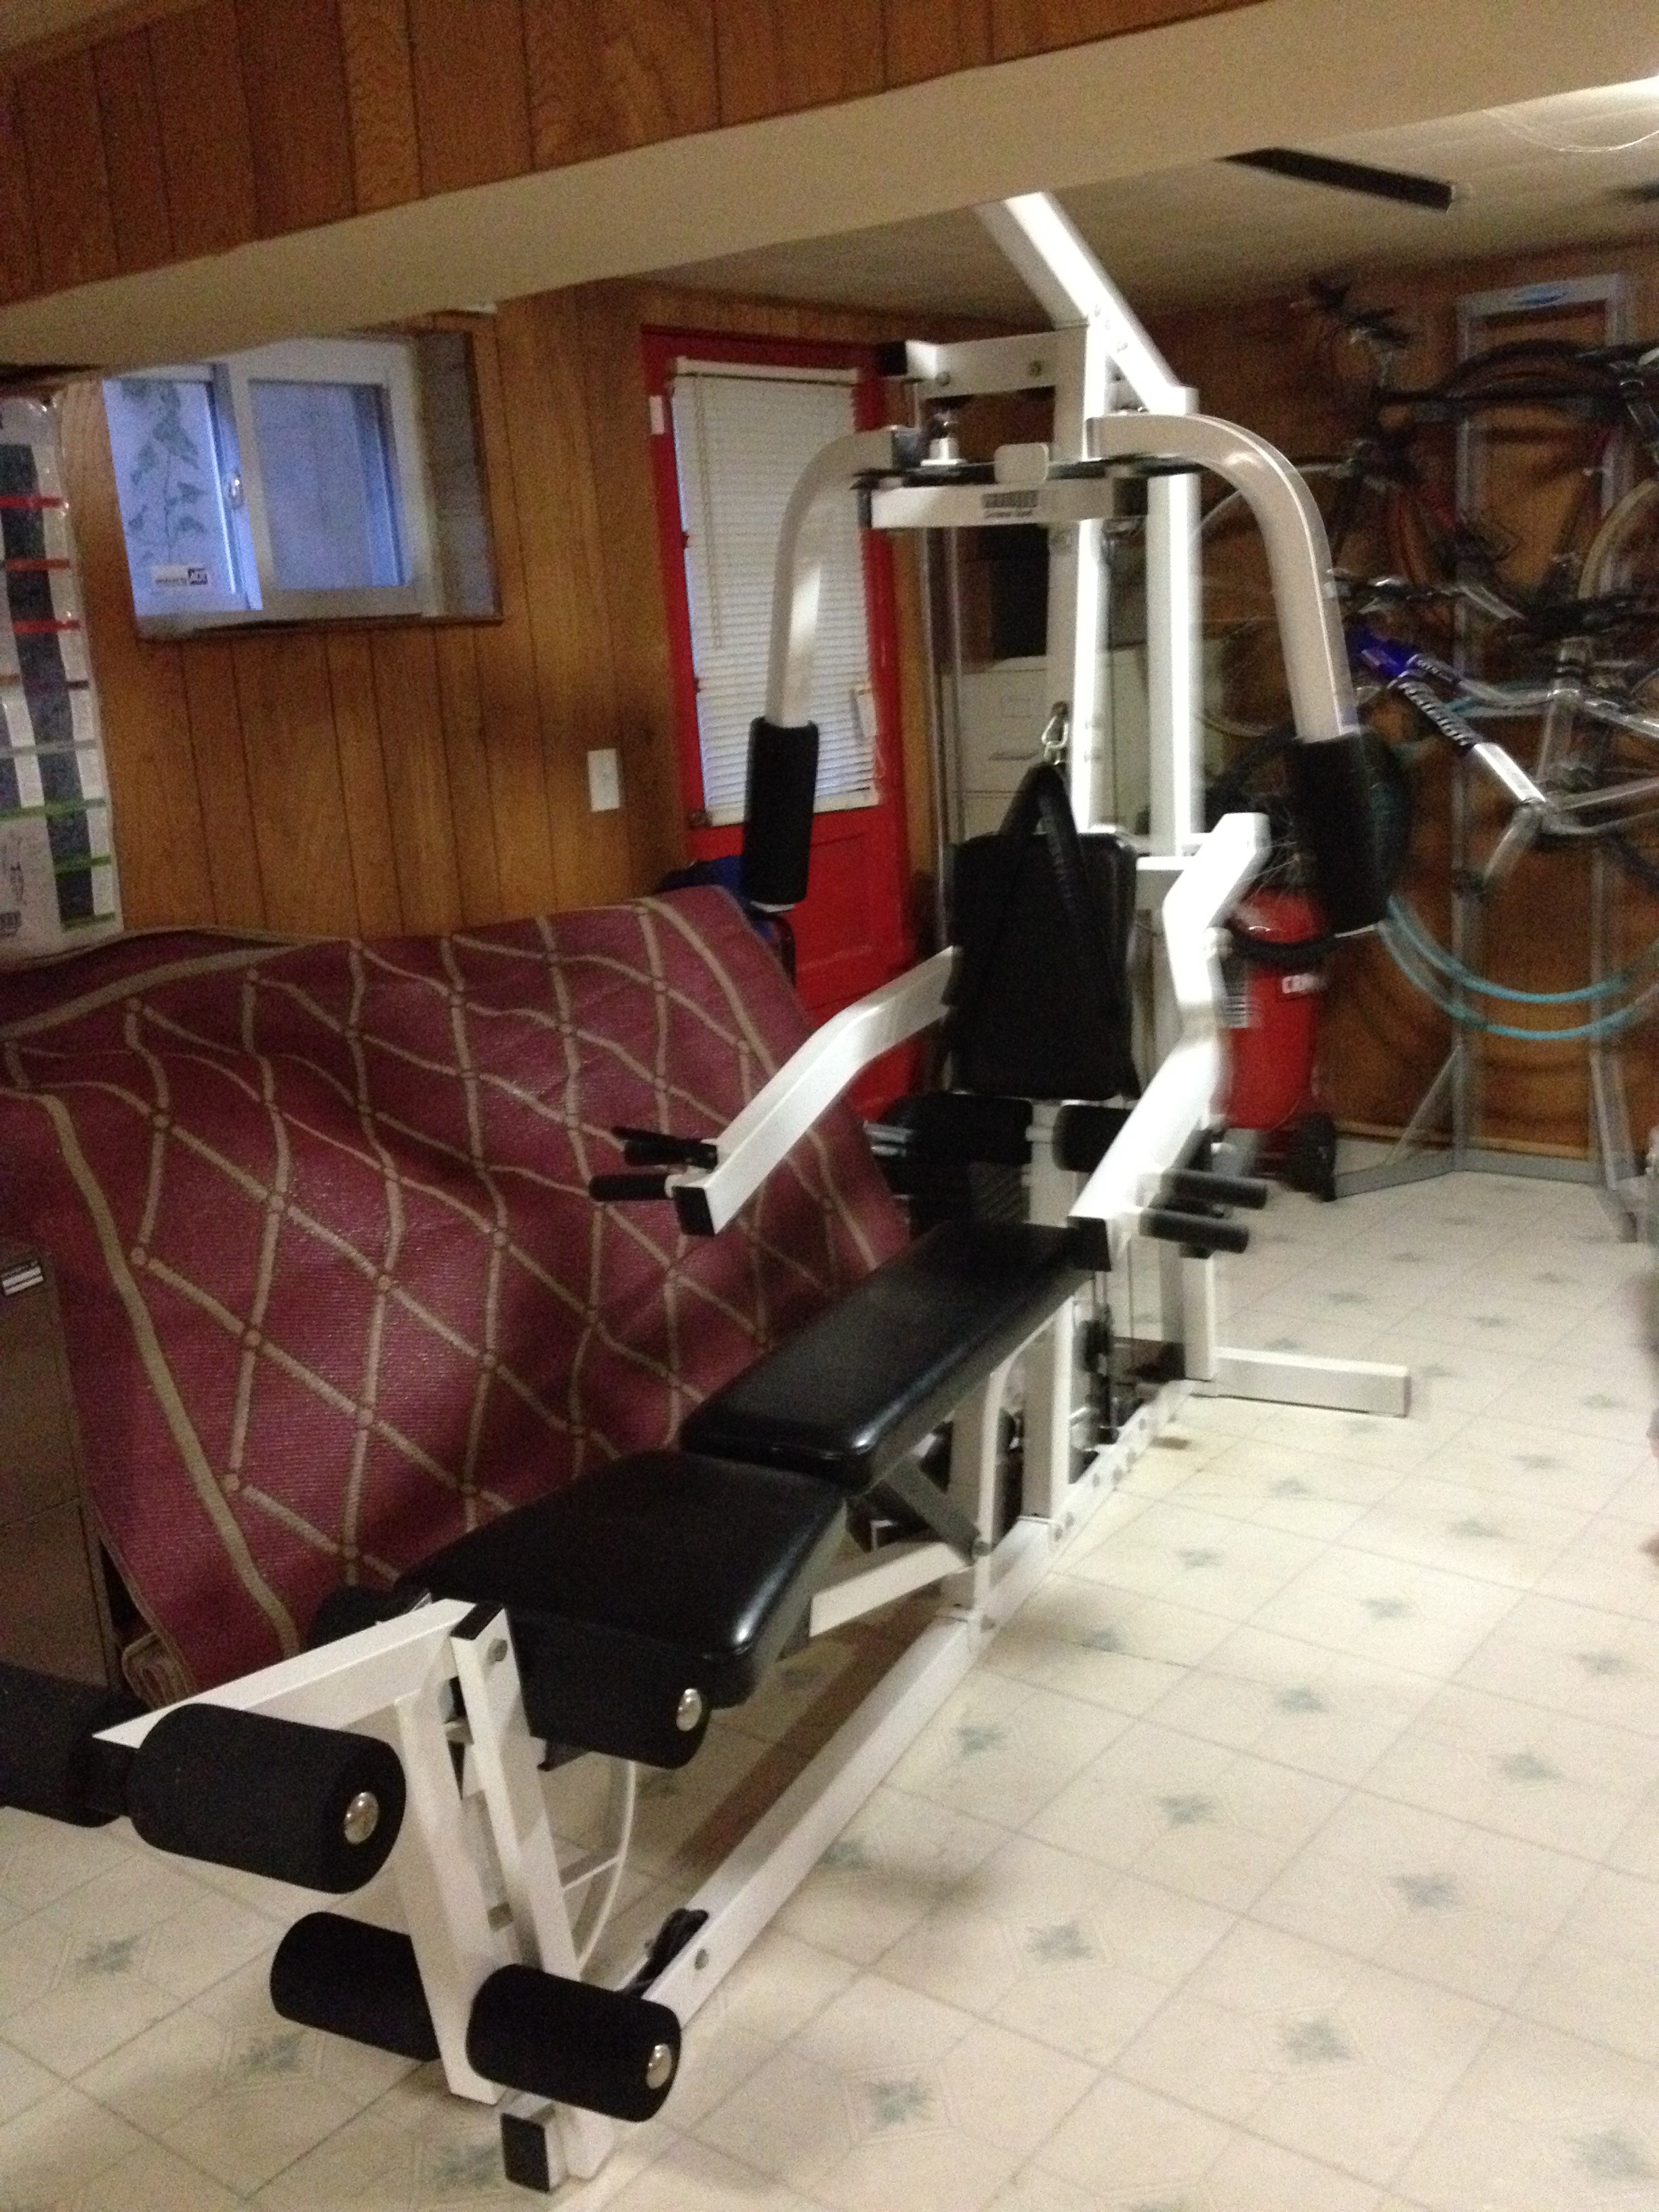 Free Exercise Equipment 1 of 2